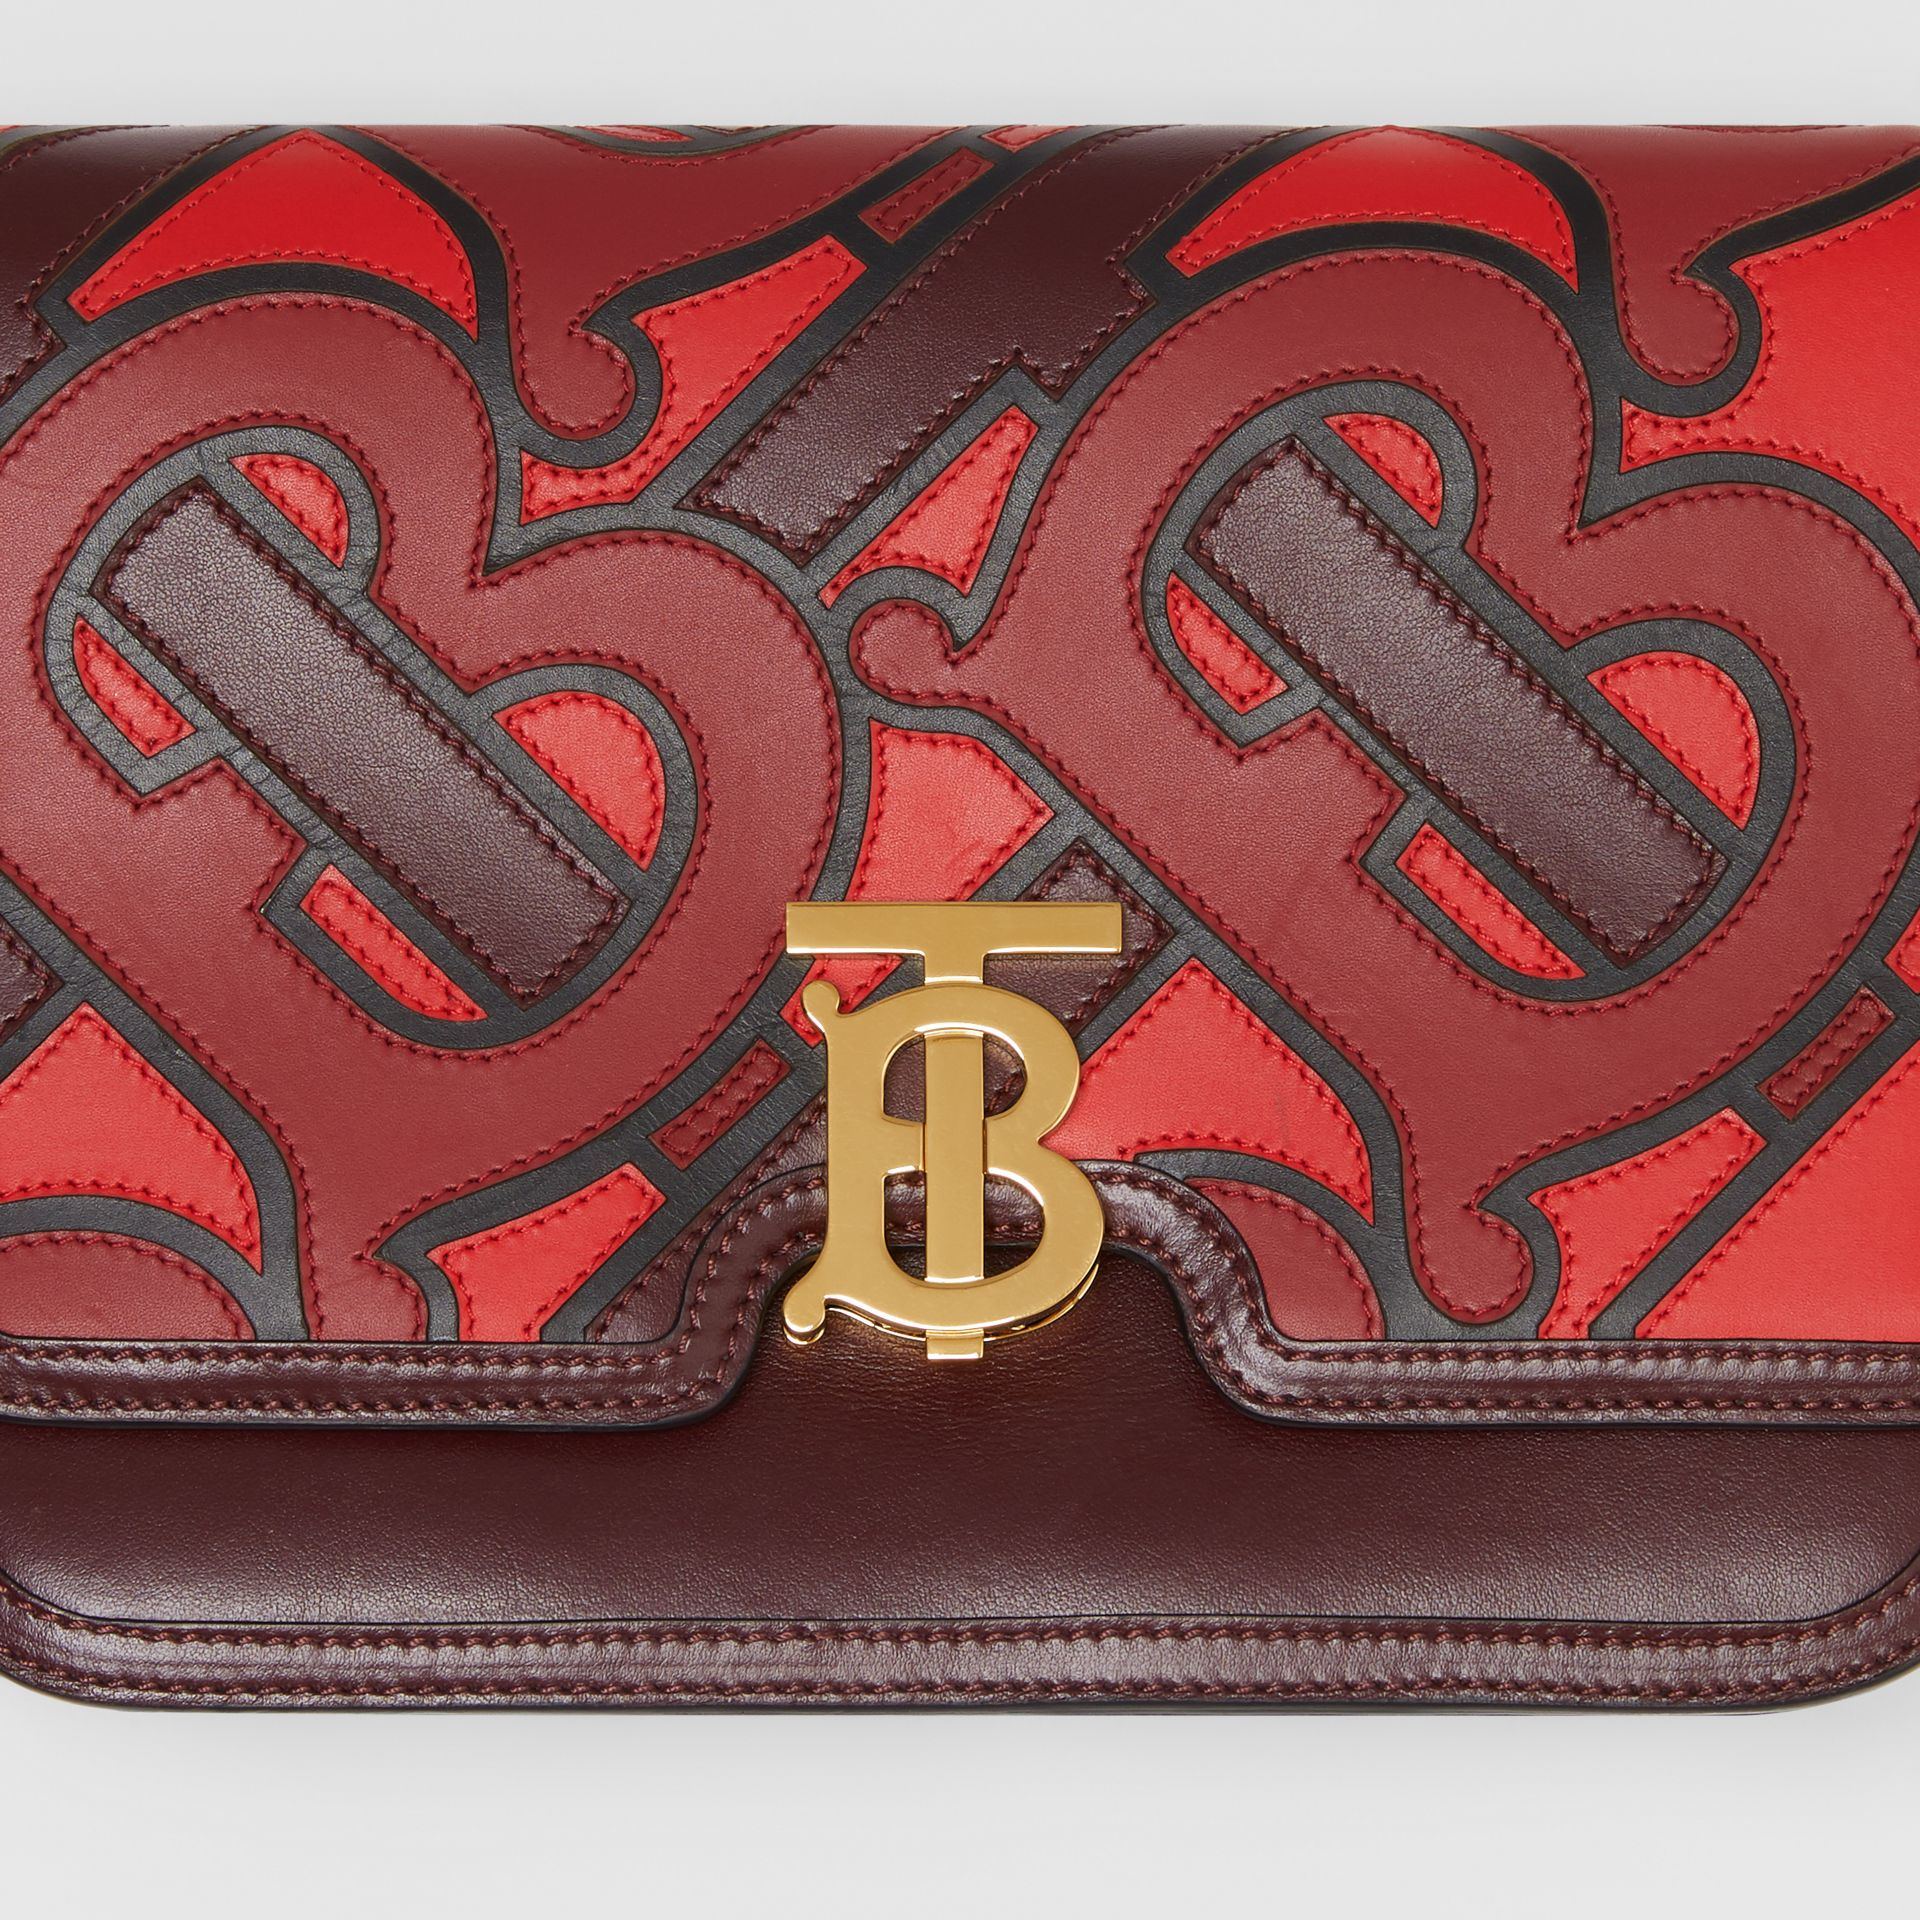 Medium Monogram Appliqué Leather TB Bag in Oxblood - Women | Burberry United Kingdom - gallery image 1